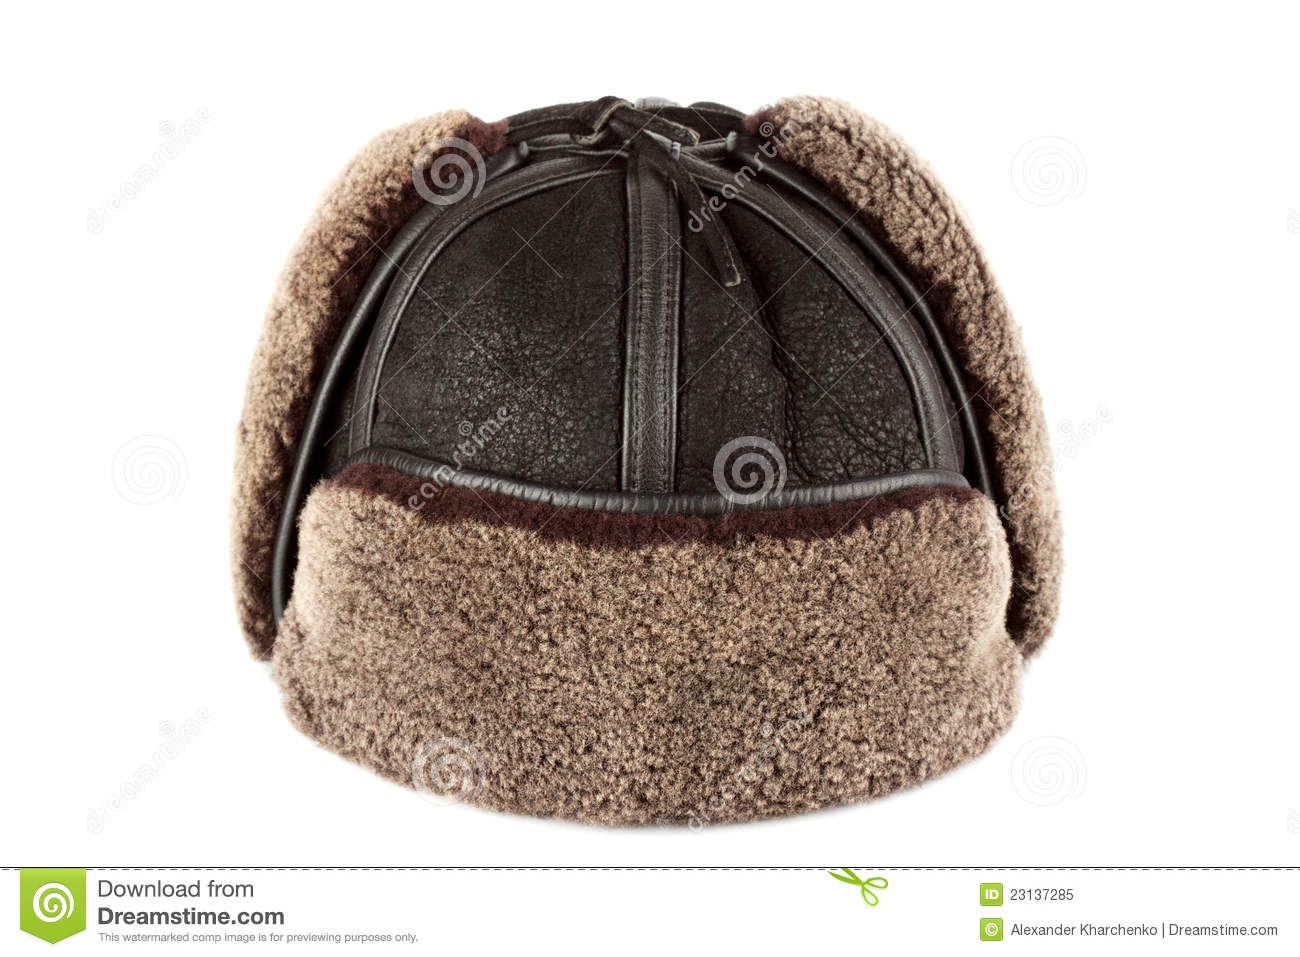 68bad0700 Winter hat ear flaps stock image. Image of leather, color - 23137285